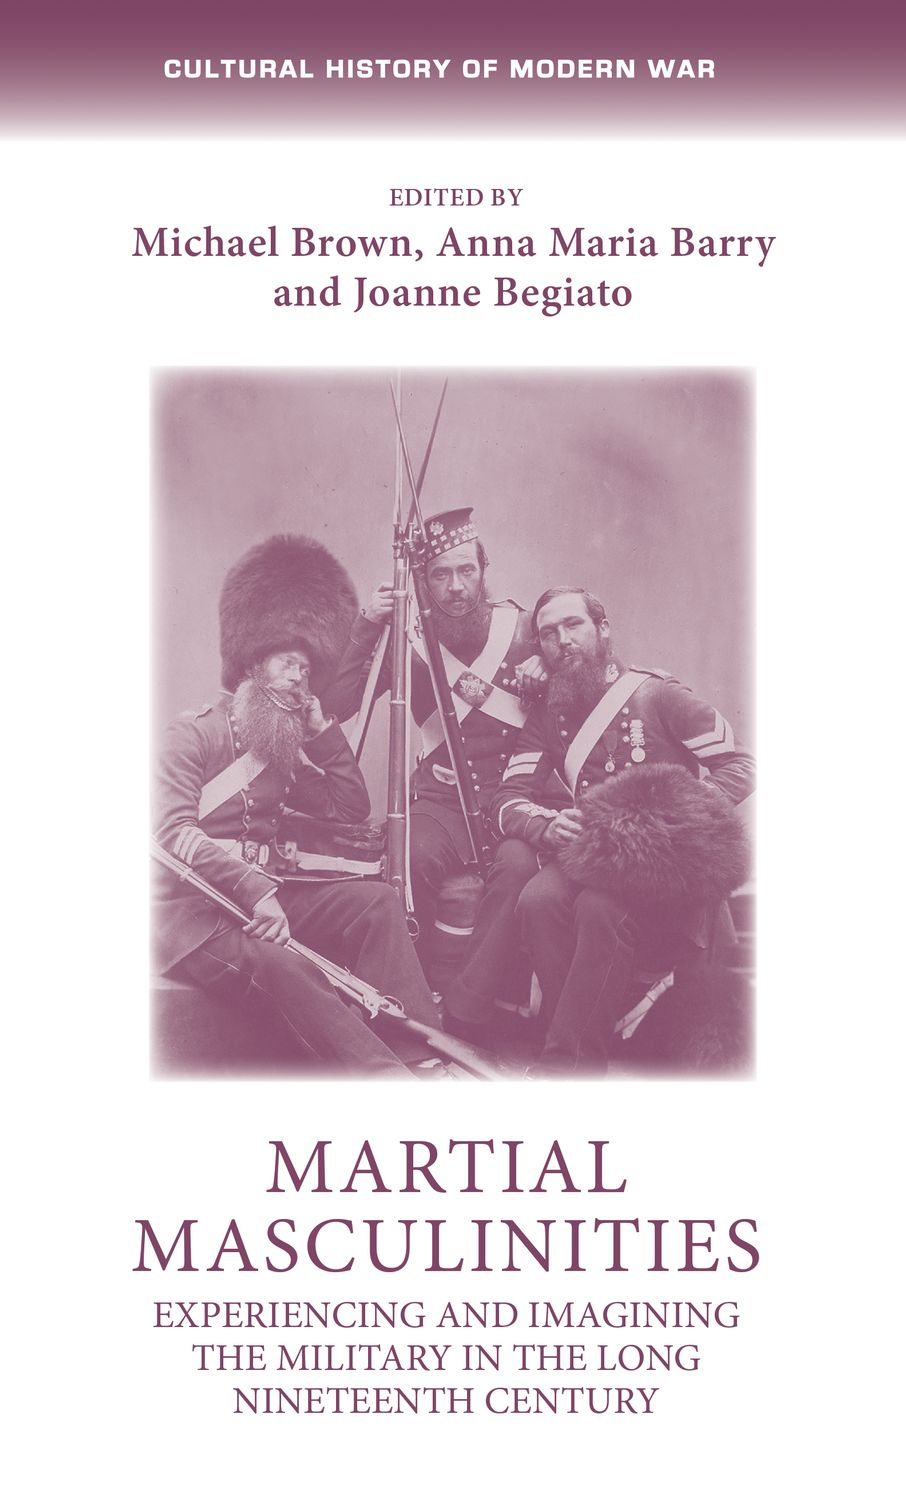 Martial MasculinitiesExperiencing and Imagining the Military in the Long Nineteenth Century